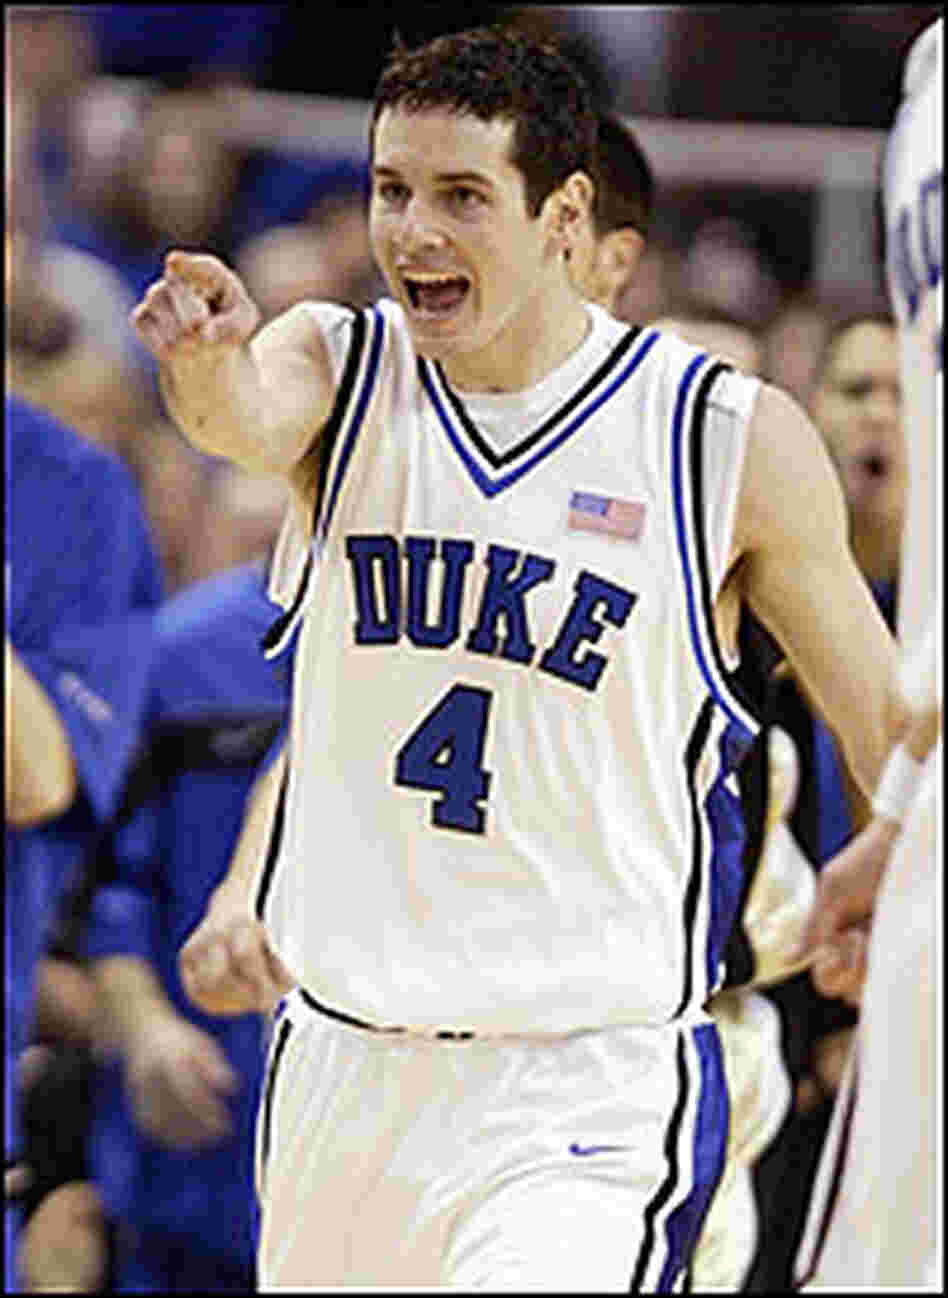 JJ Redick of Duke smiles after a win.